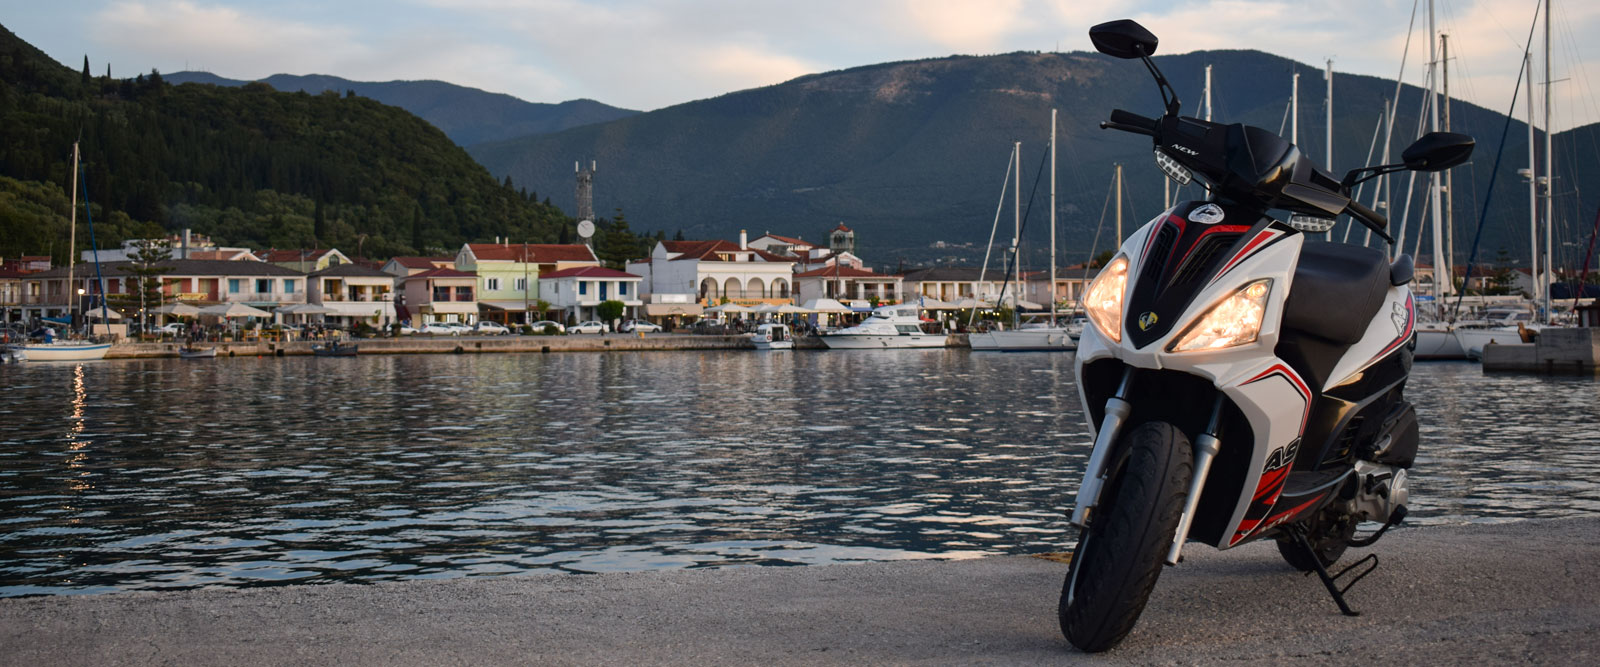 Kefalonia Scooter Rentals